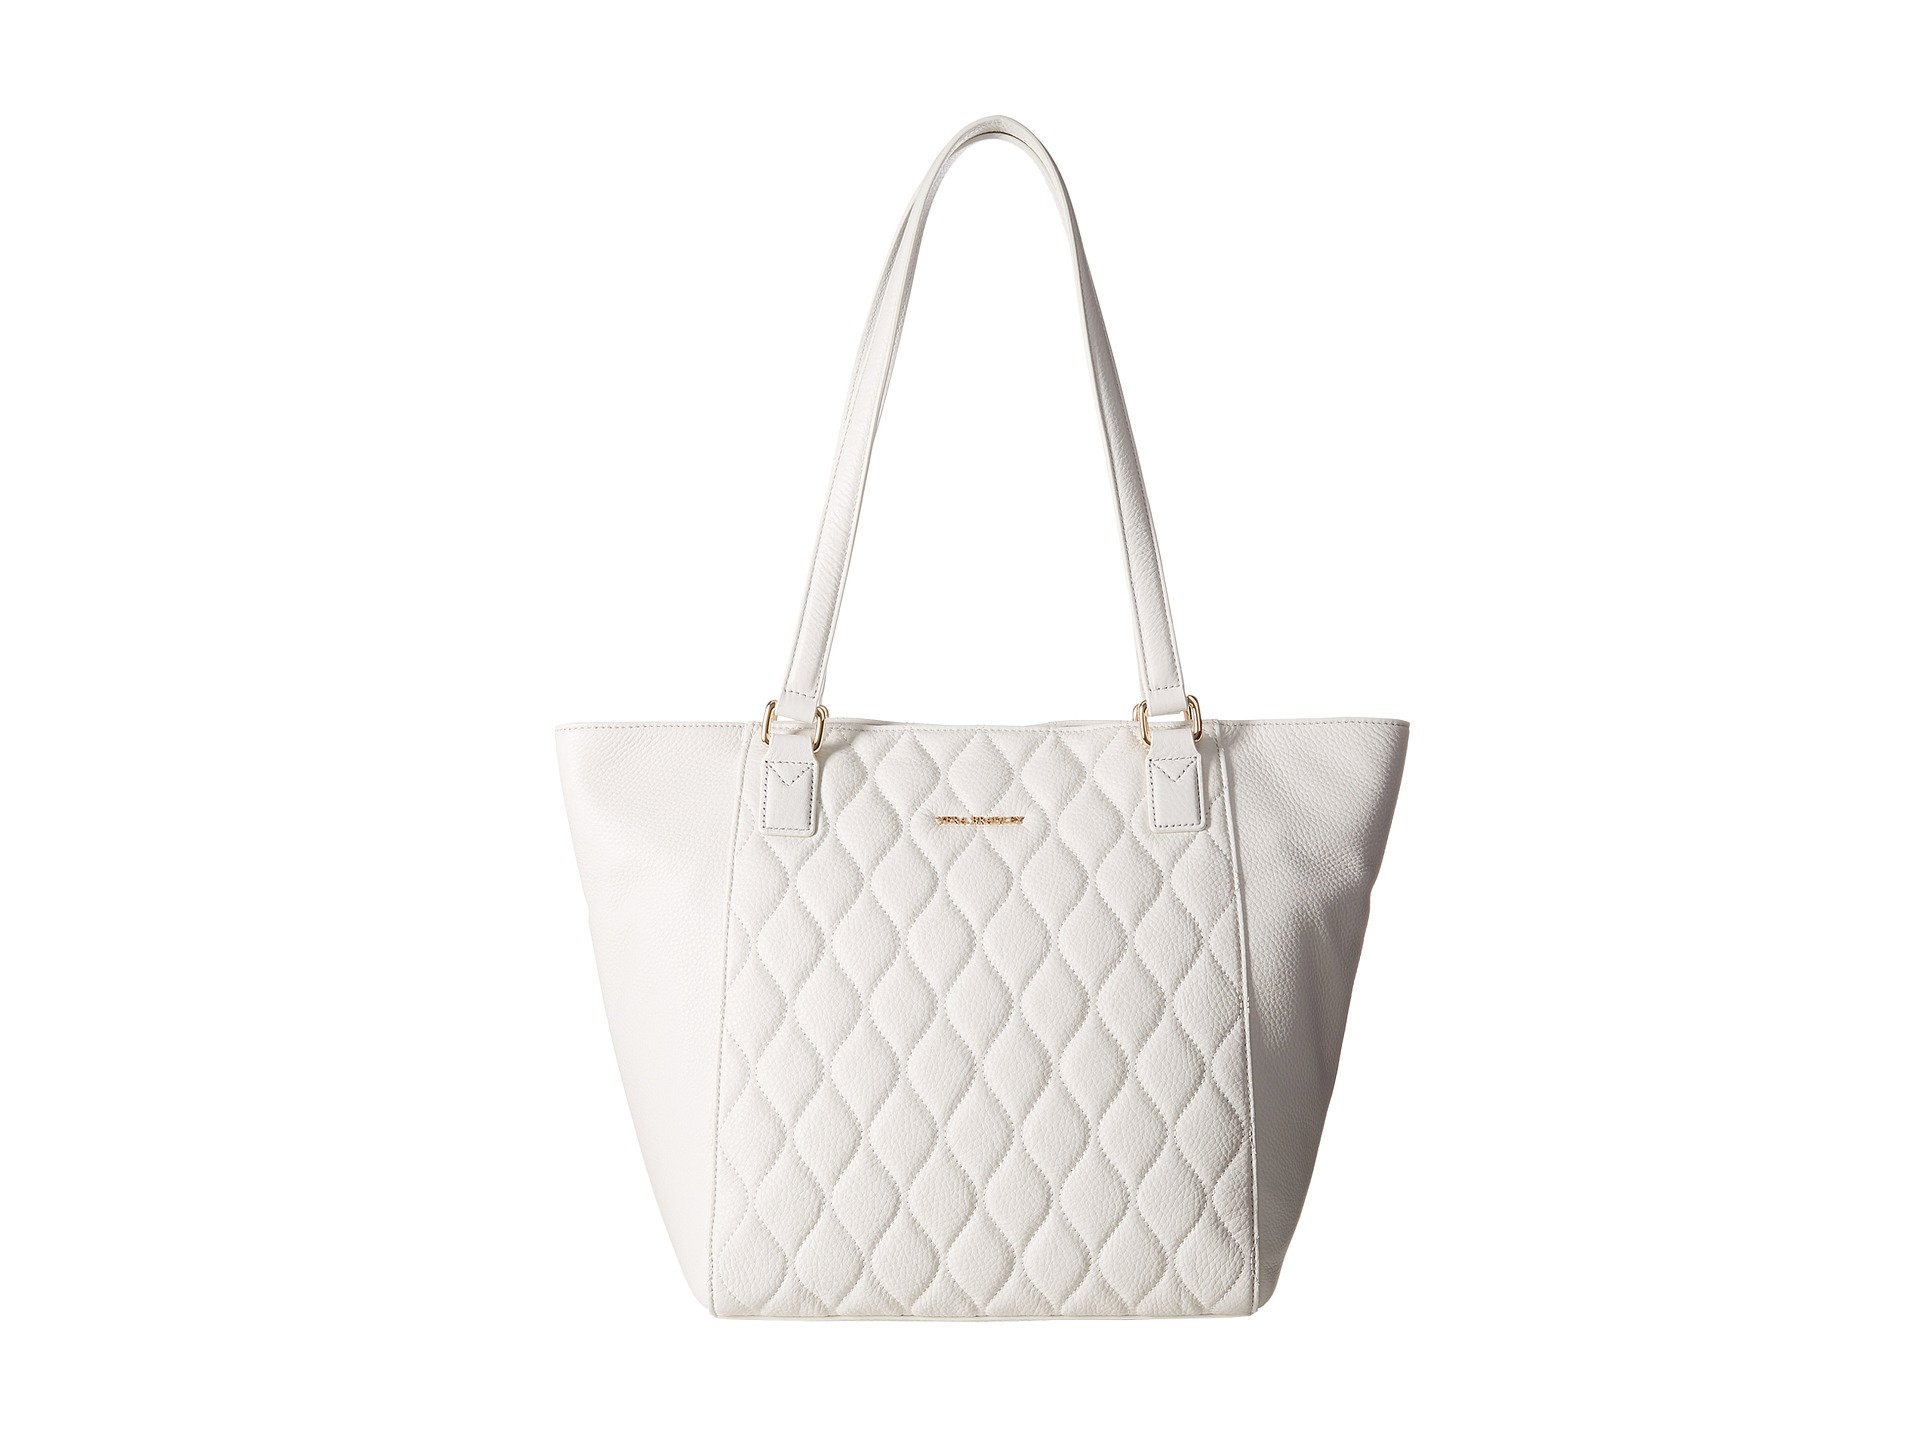 4a27b5f178c1 Lyst - Vera Bradley Quilted Small Ella Tote in White